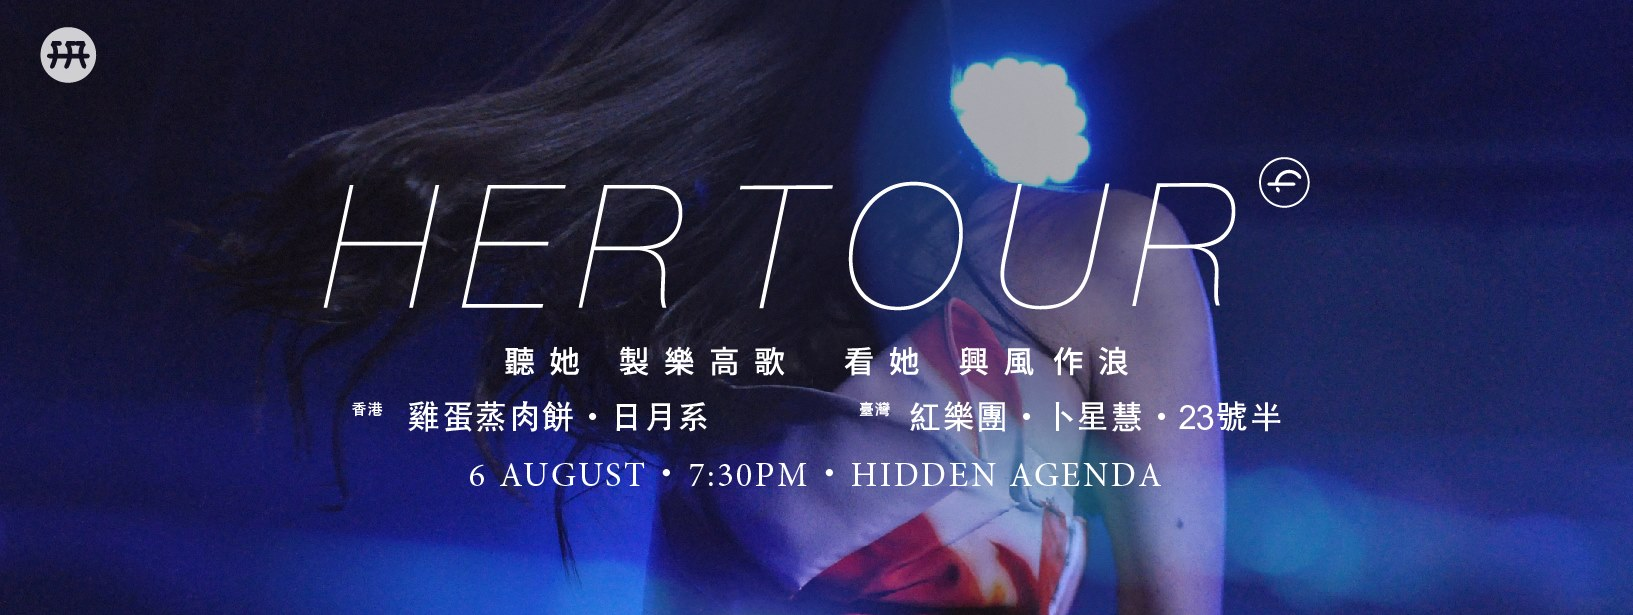 her tour